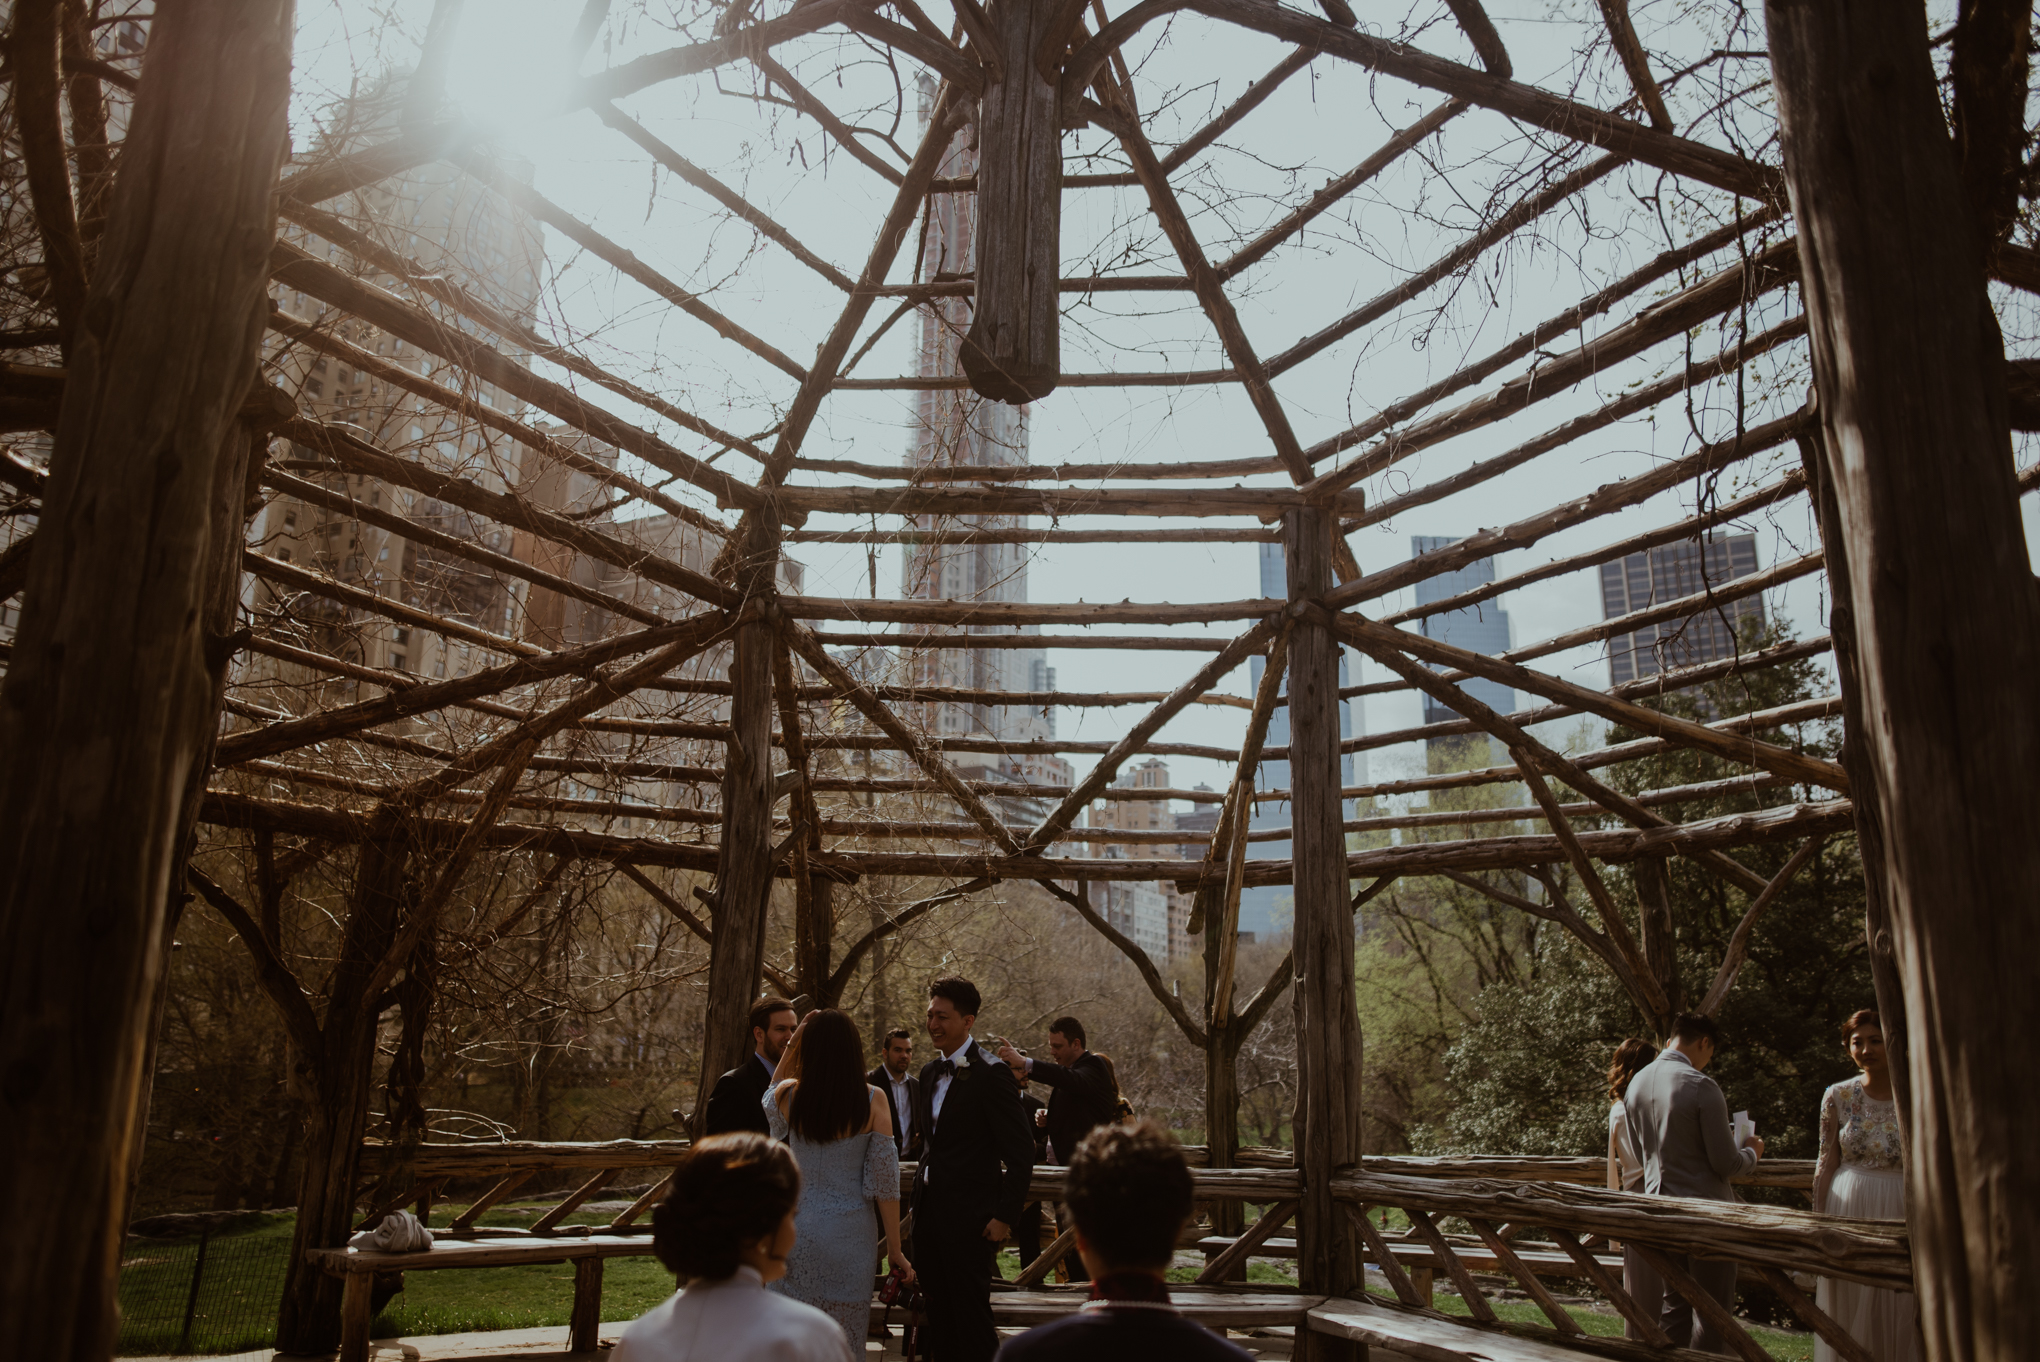 Cop cot views from an elopement wedding in Central Park NYC